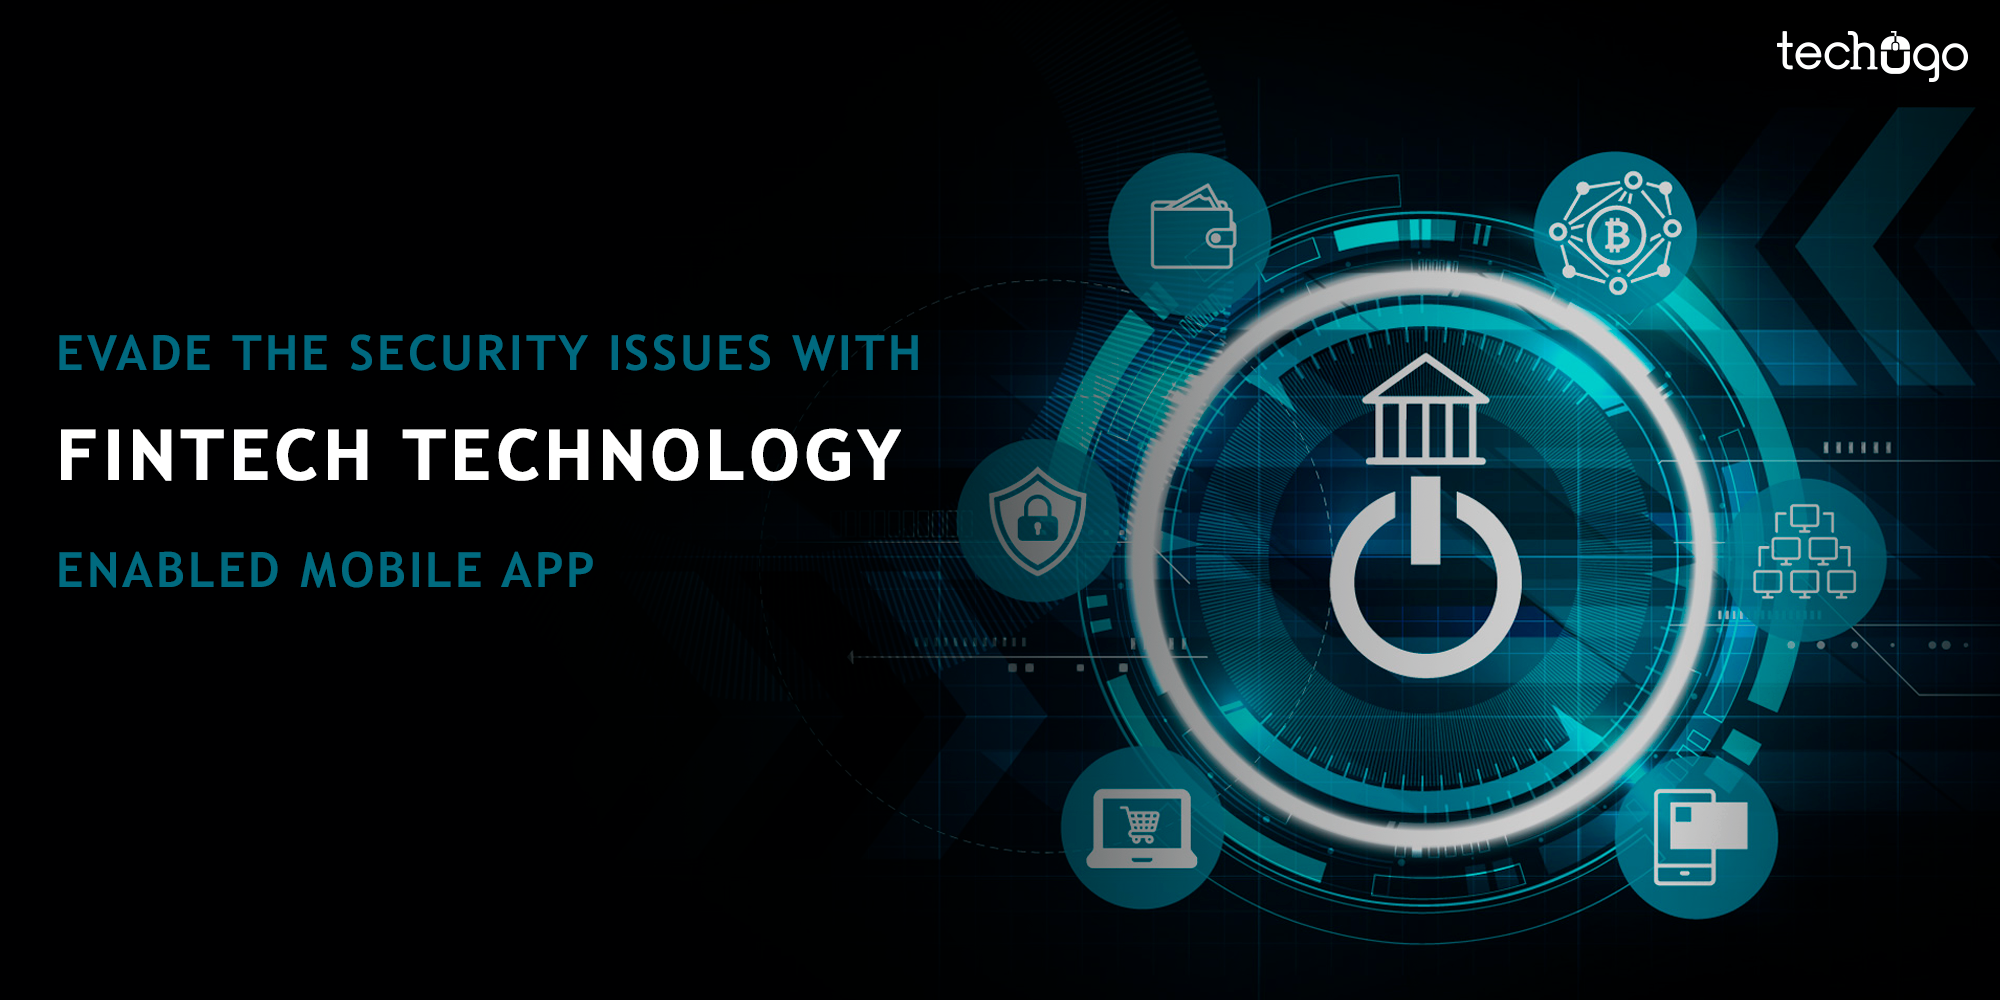 :  Evade The Security Issues With Fintech Technology-Enabled Mobile App